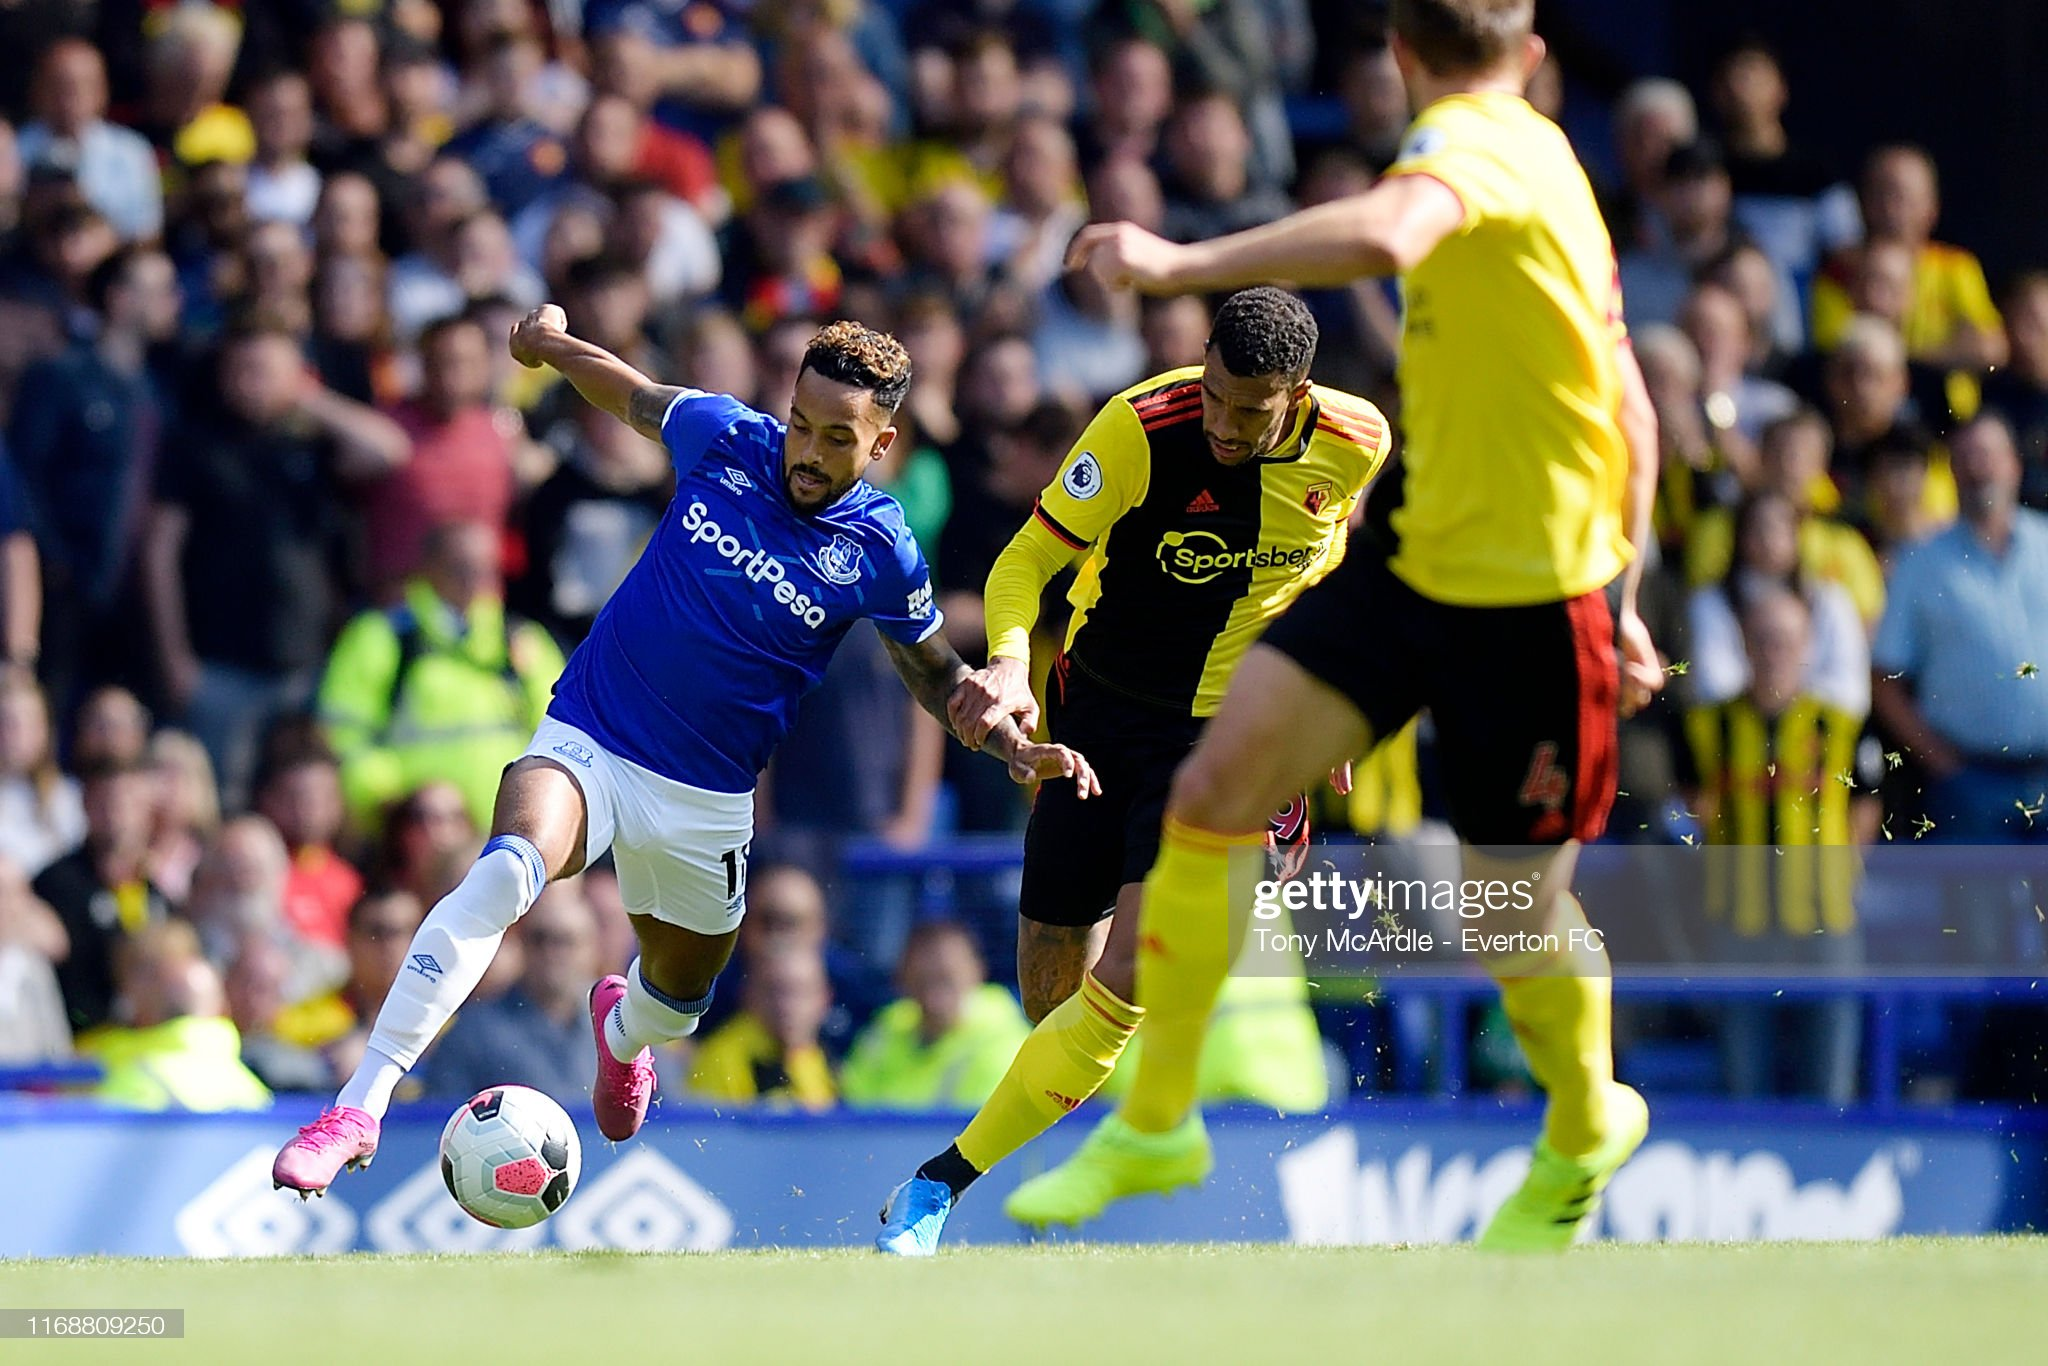 Everton v Watford preview, prediction and odds